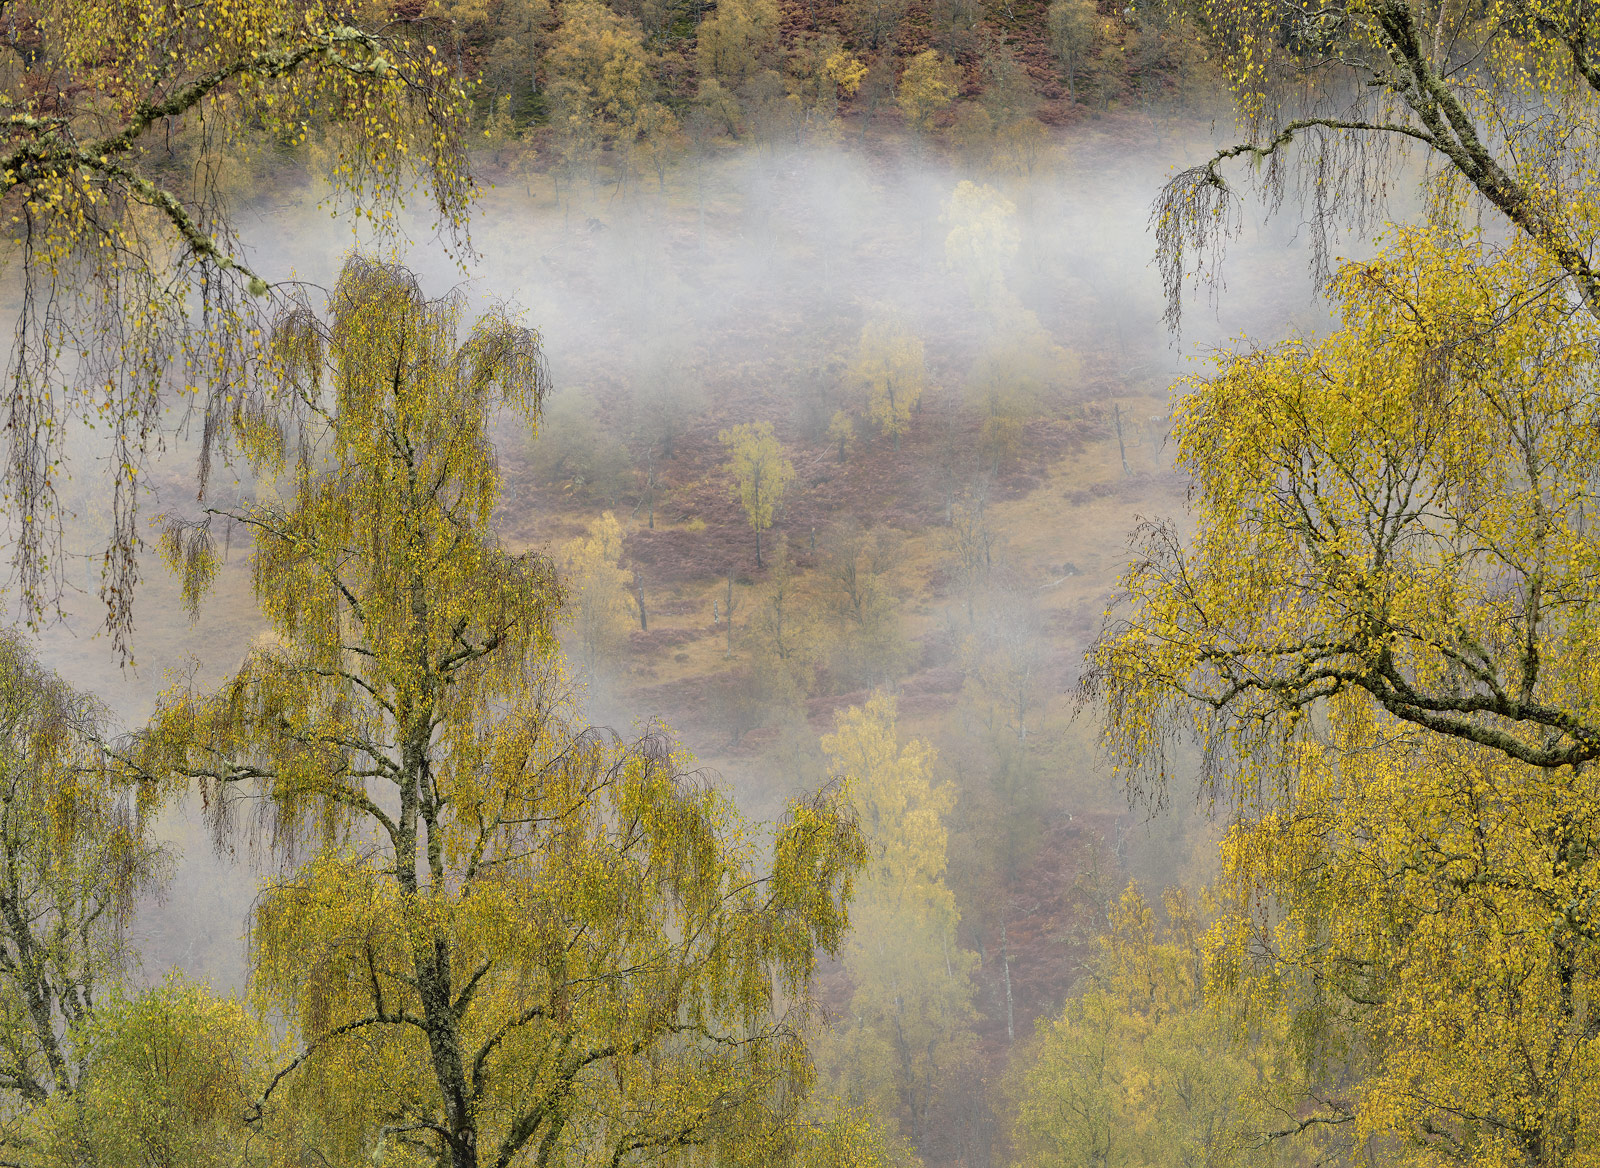 This was one of many hugely atmospheric shots captured on the same autumnal morning near the entrance of Glen Affric where the...